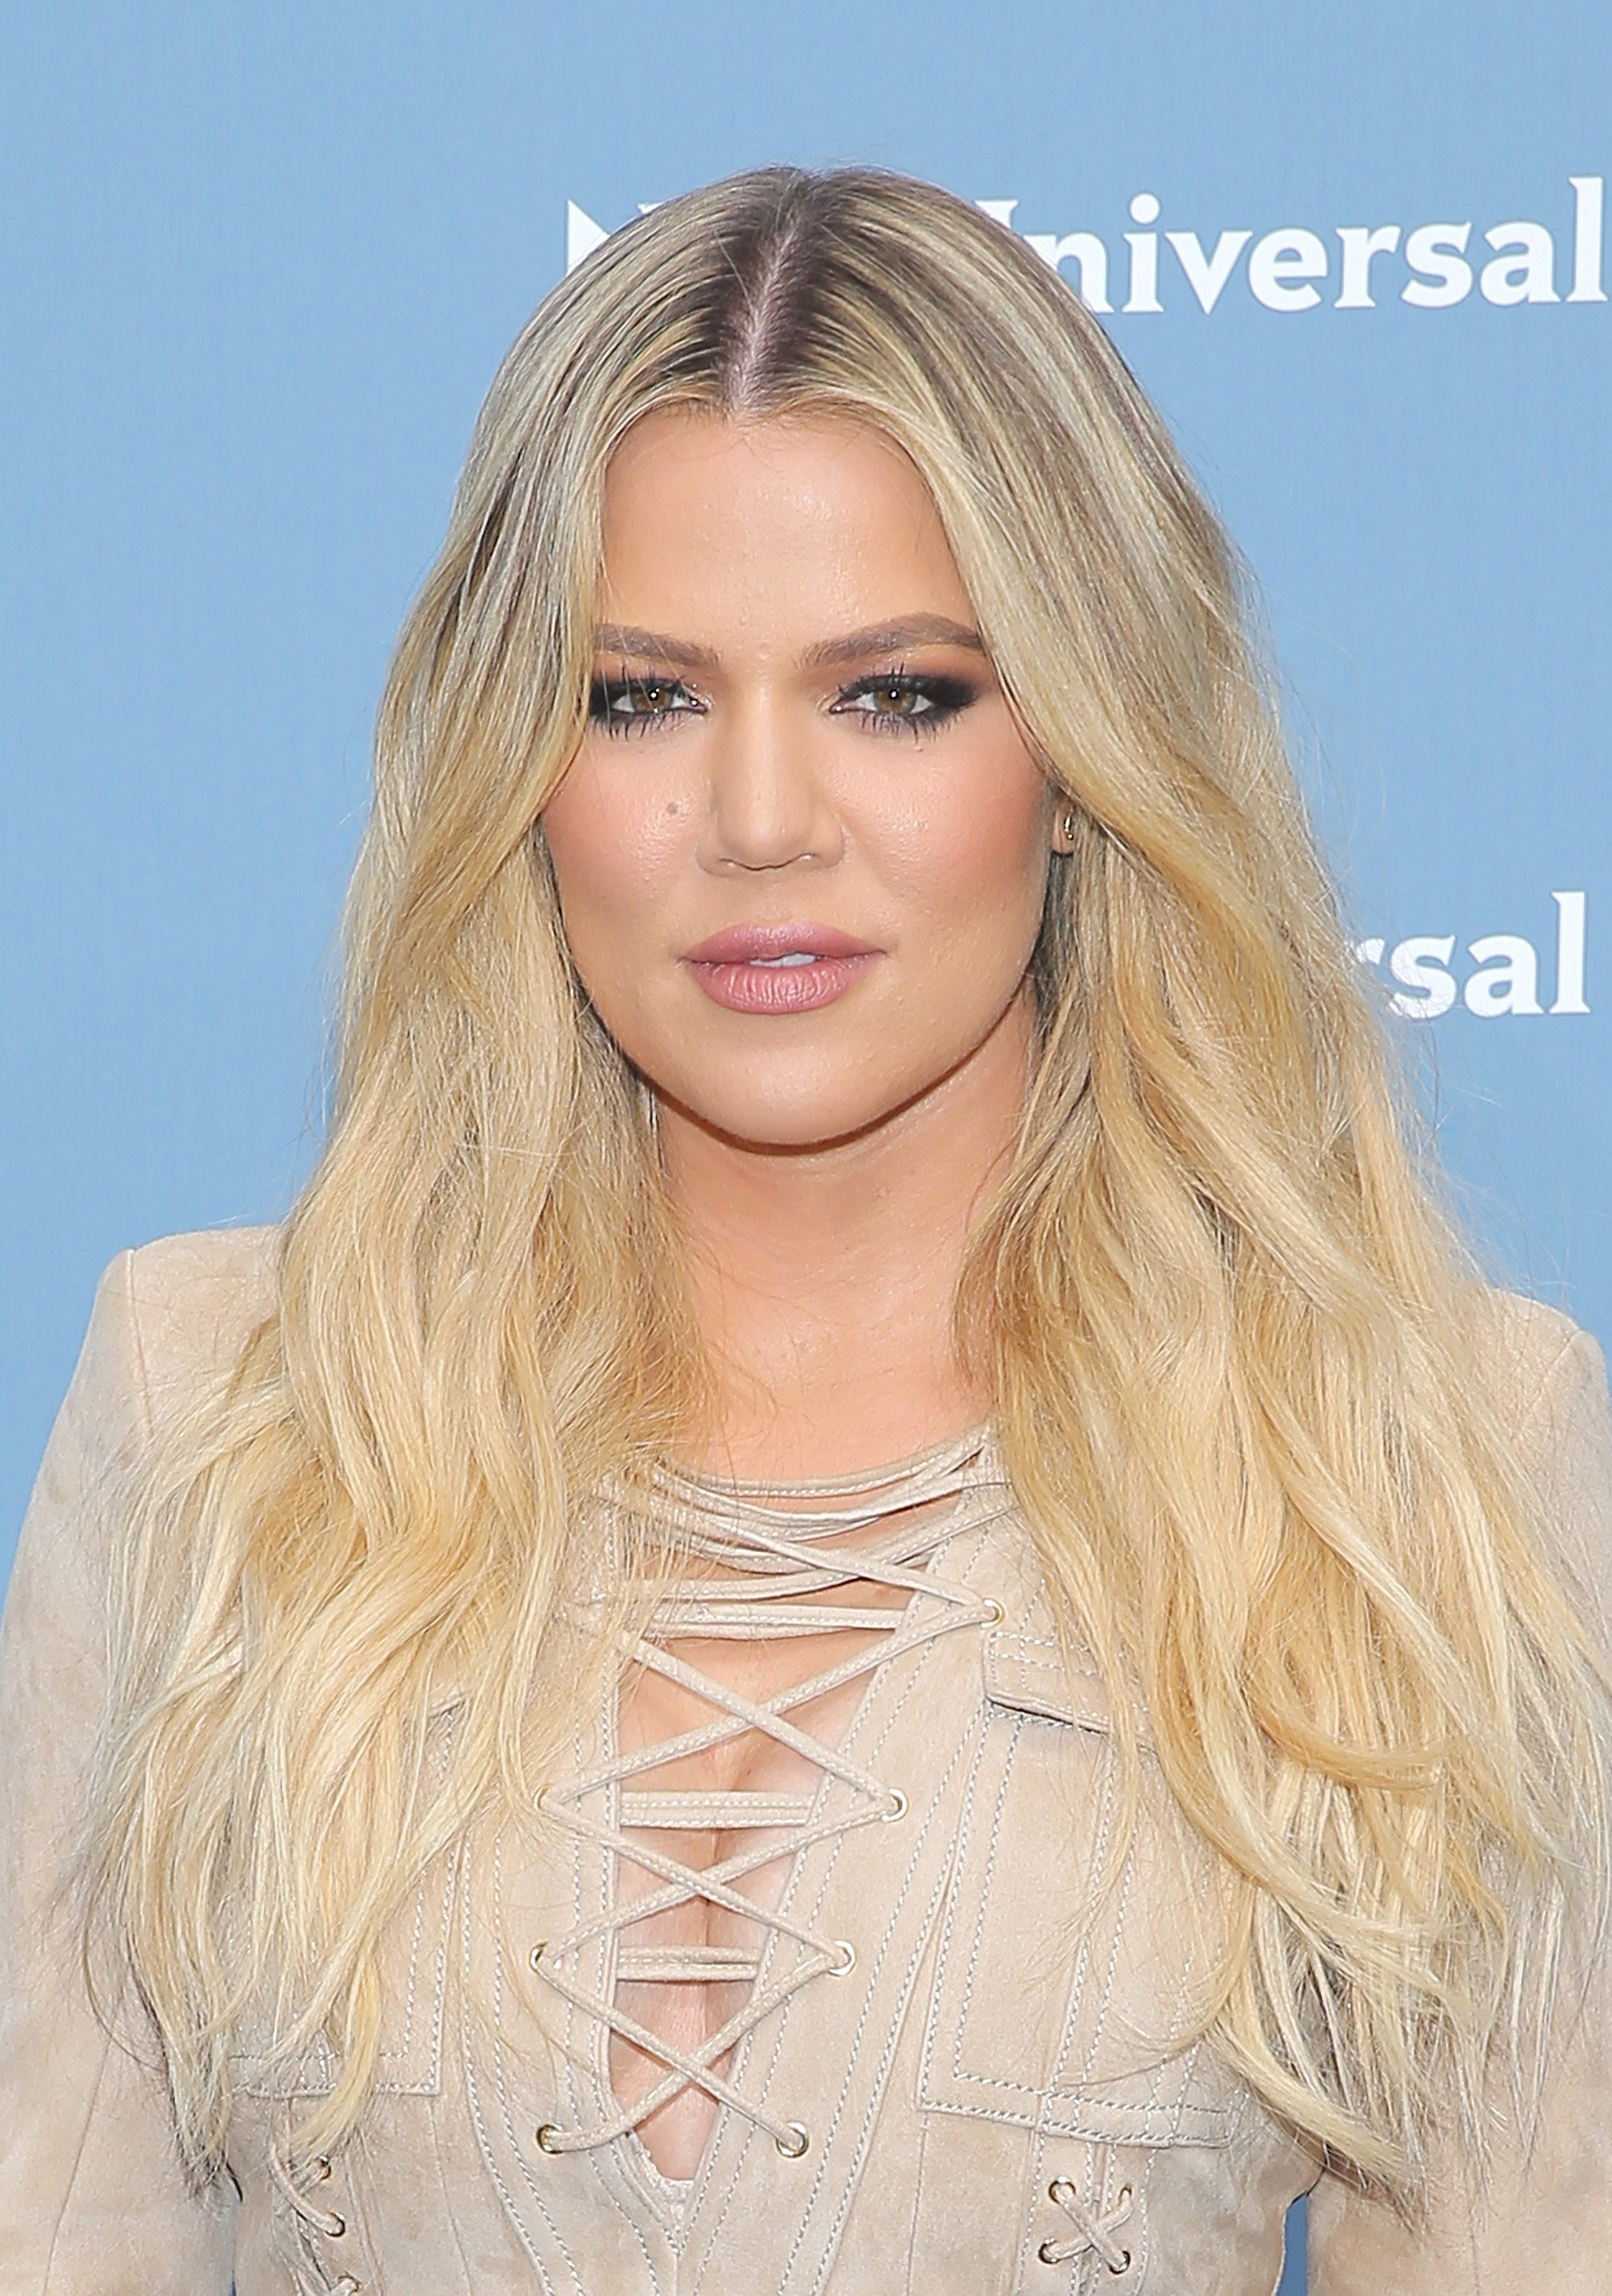 Khloé Kardashian at Radio City Music Hall on May 16, 2016 | Photo: Getty Images